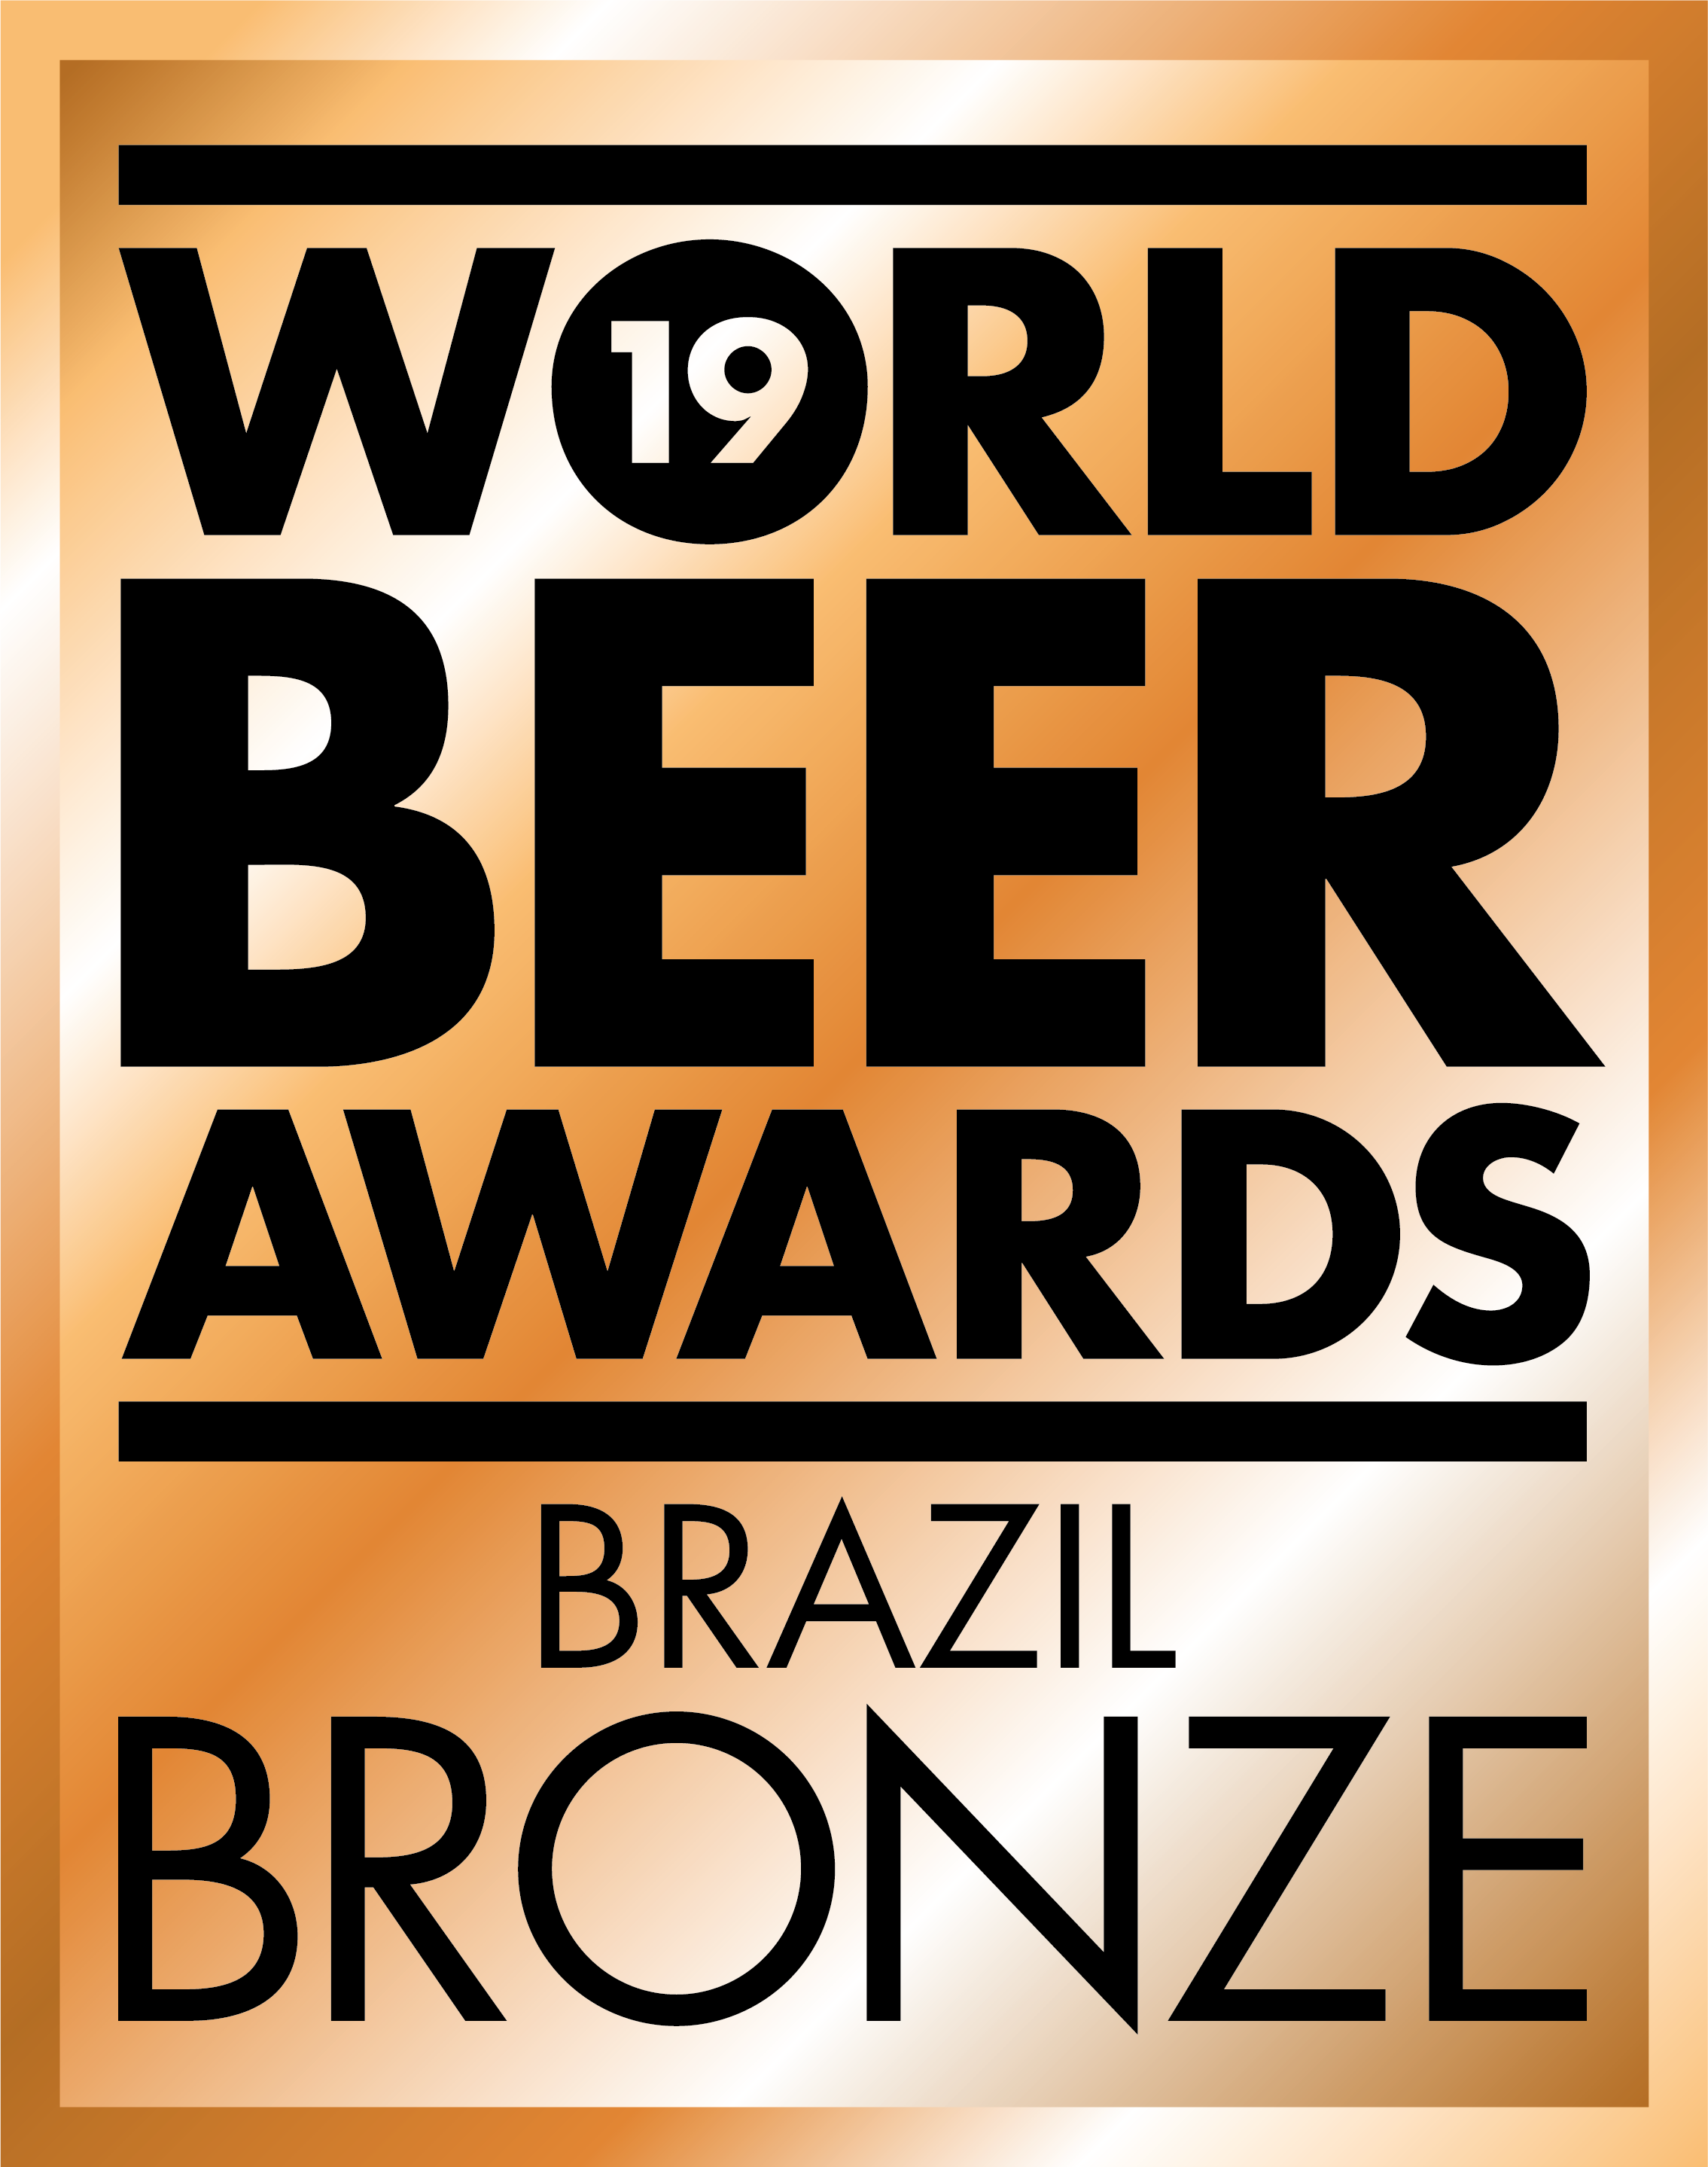 World Beer Awards 2019 - BRONZE